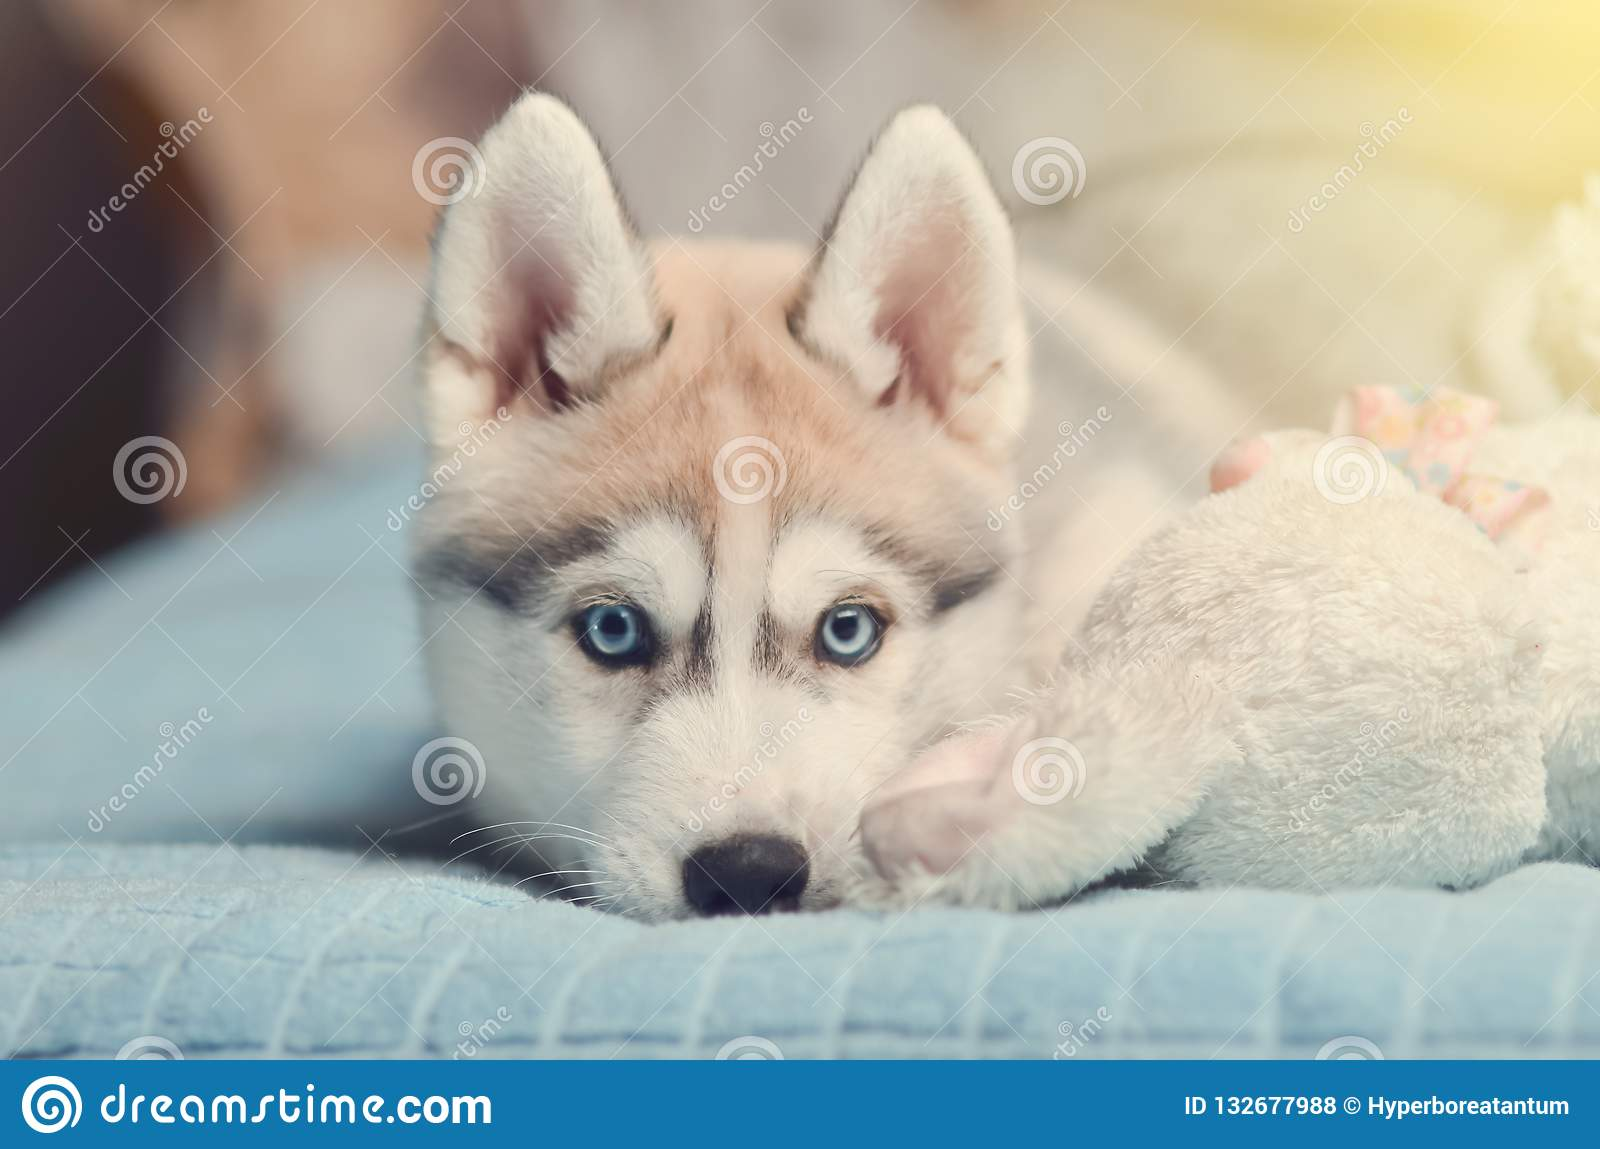 Siberian Husky Puppy With Blue Eyes Purebred Laying On The Bed W Stock Photo Image Of Close Young 132677988